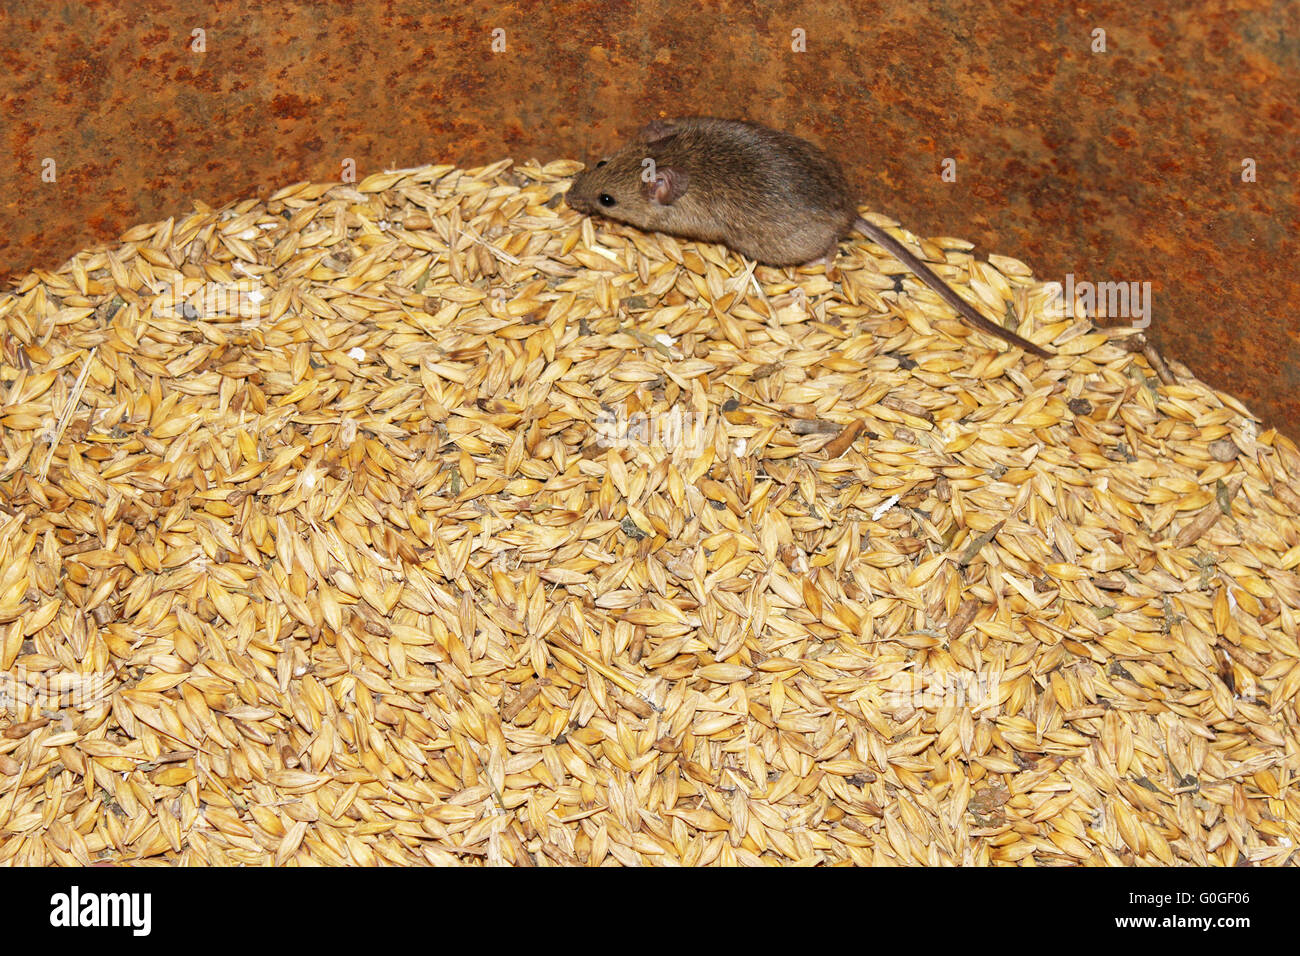 little grey mouse running on the wheat in the pantry Stock Photo